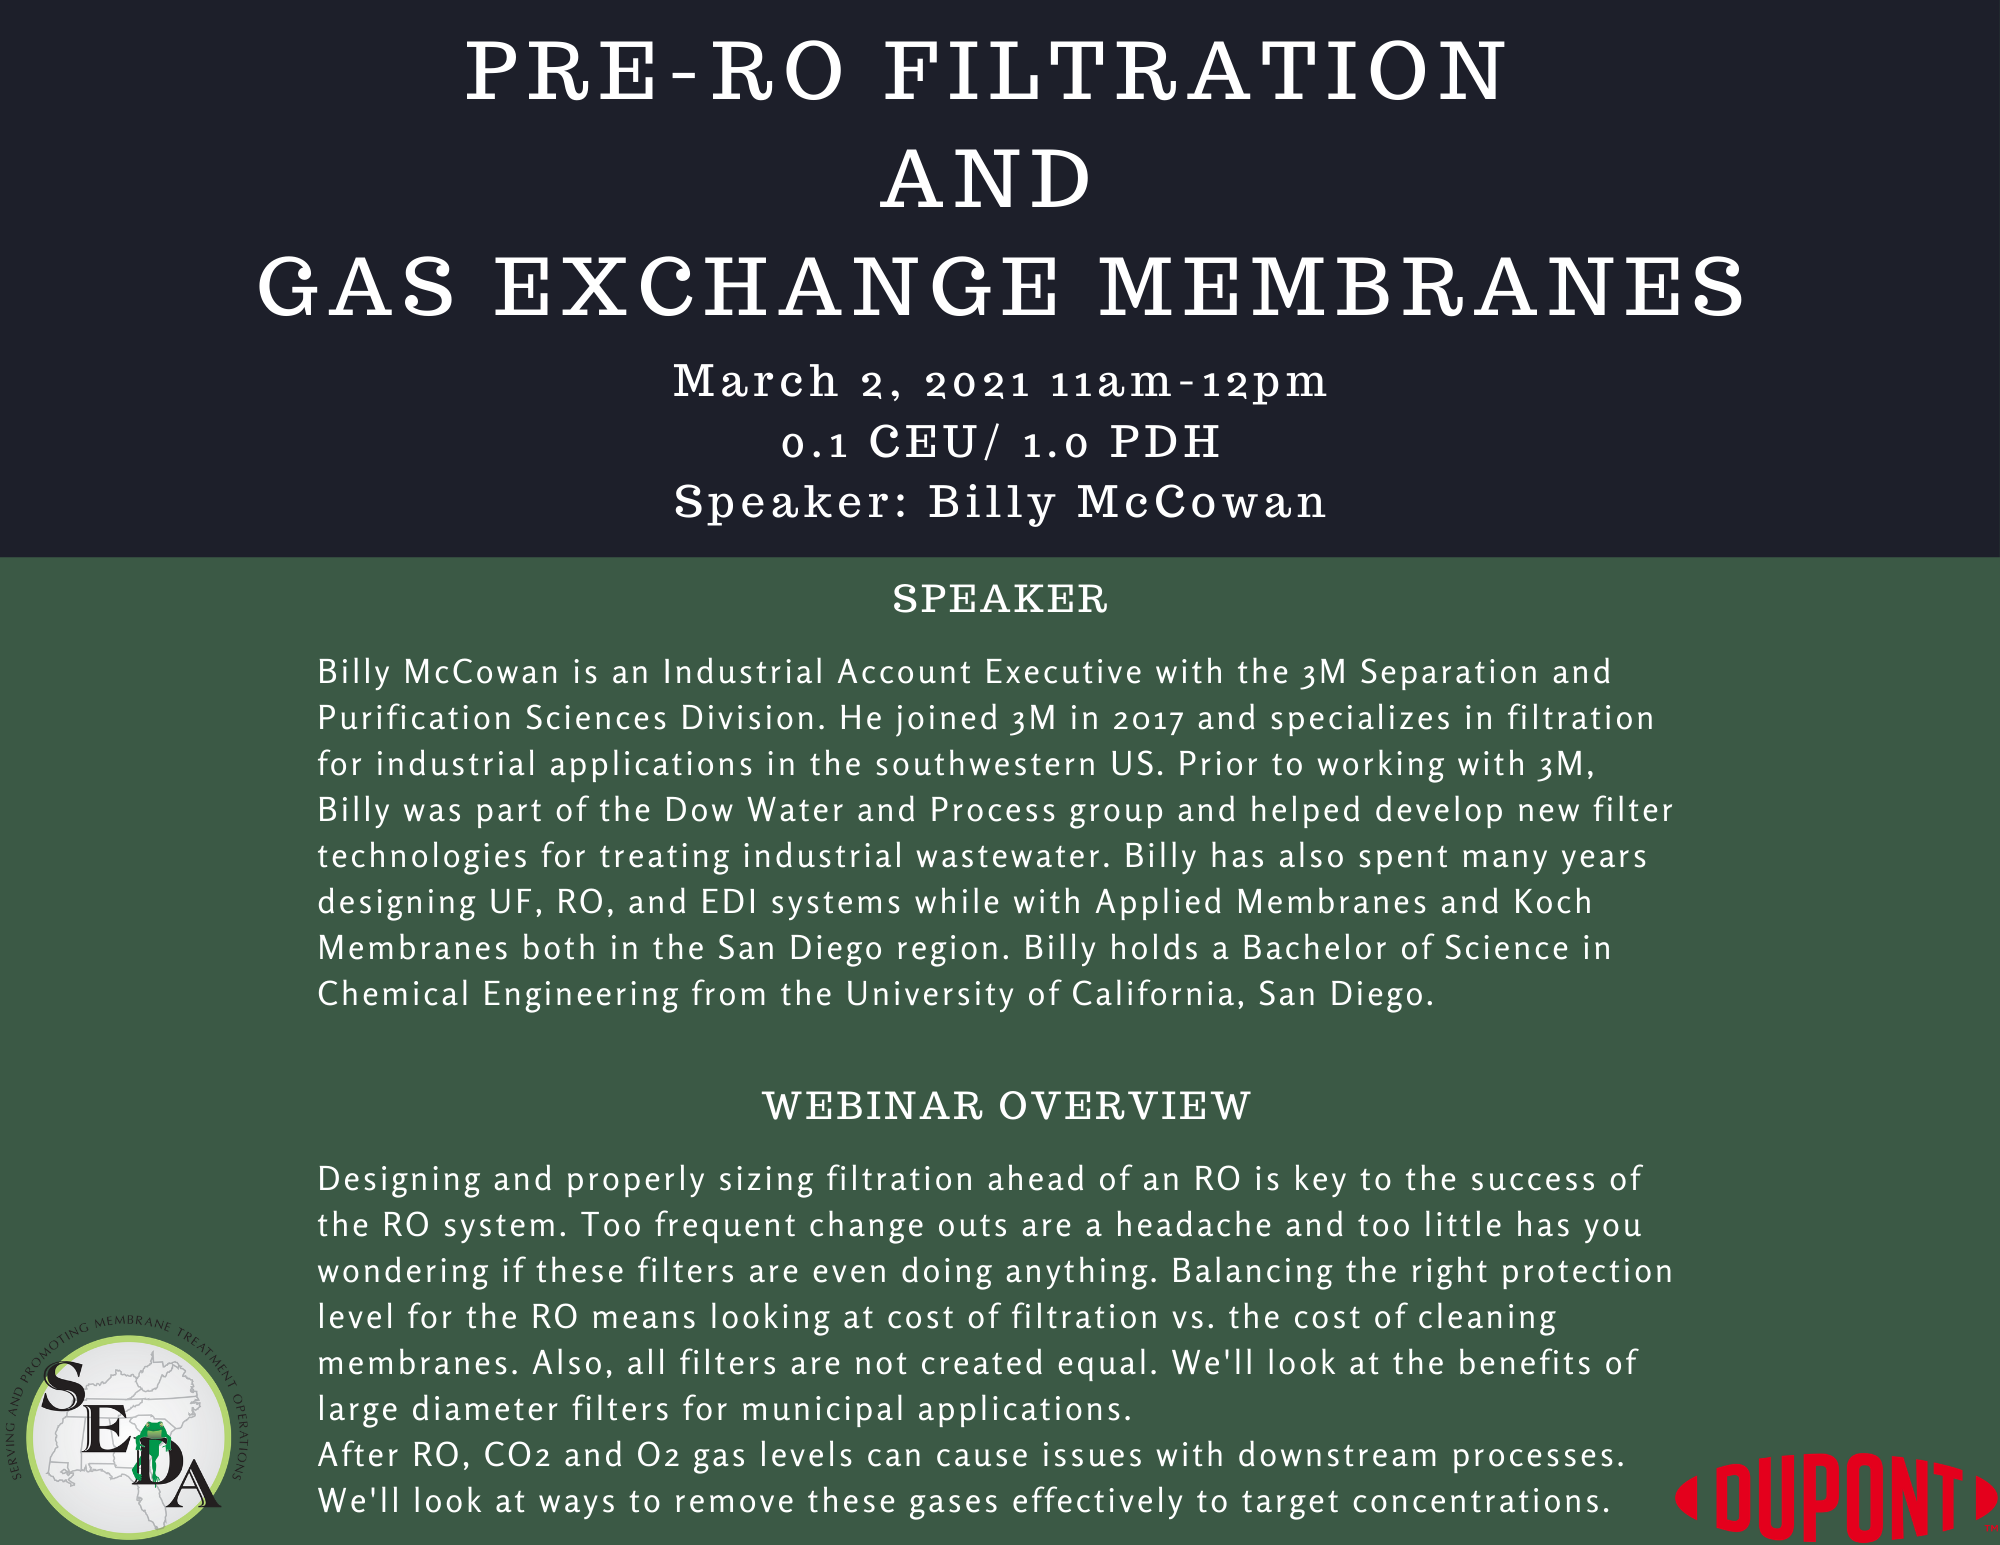 Pre-RO Filtration and Gas Exchange Membranes